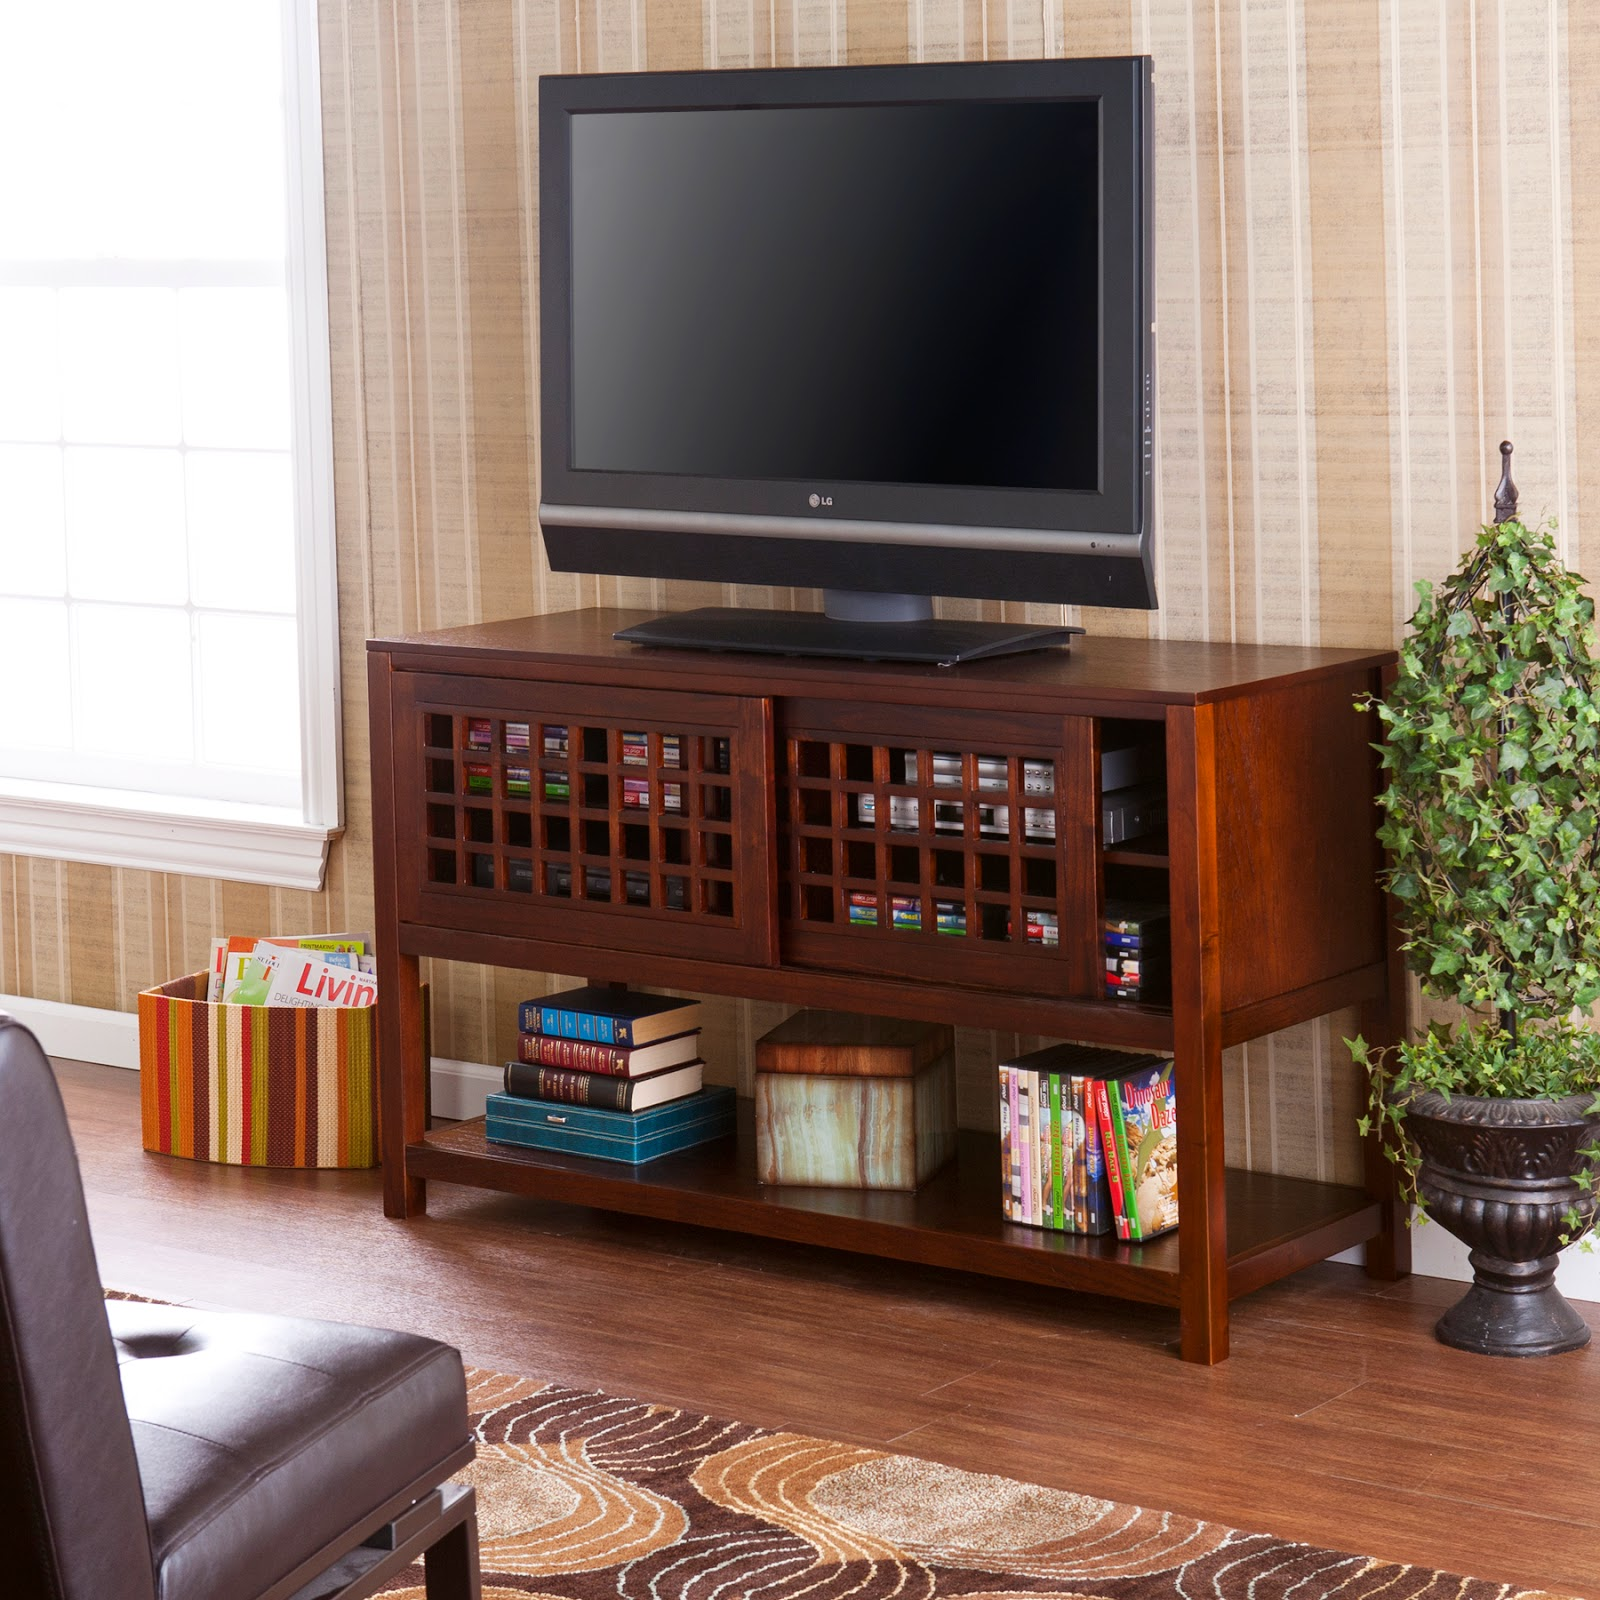 Modern tv stand ideas for comfortable room sophisticated for Living room tv stand ideas